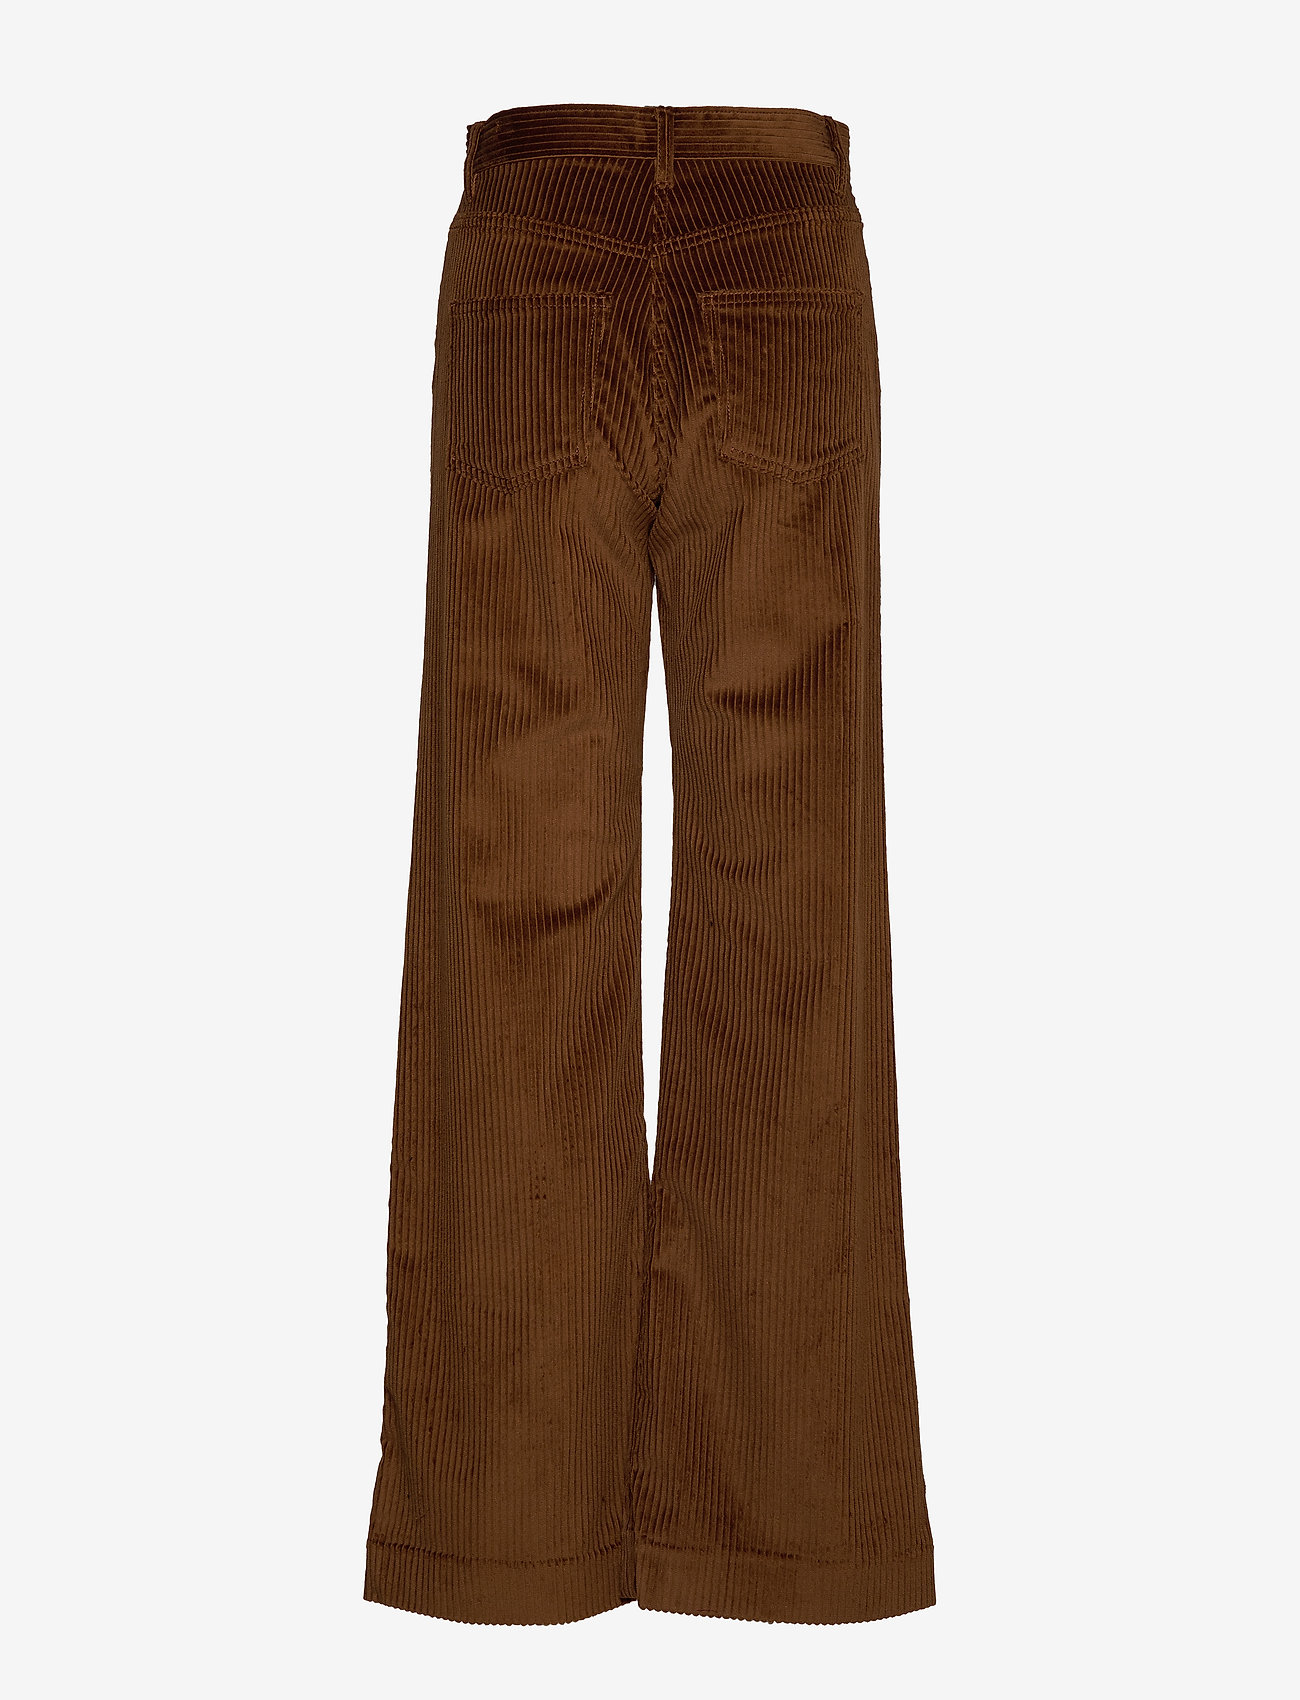 Whyred - RUTH - wide leg trousers - military brown - 1